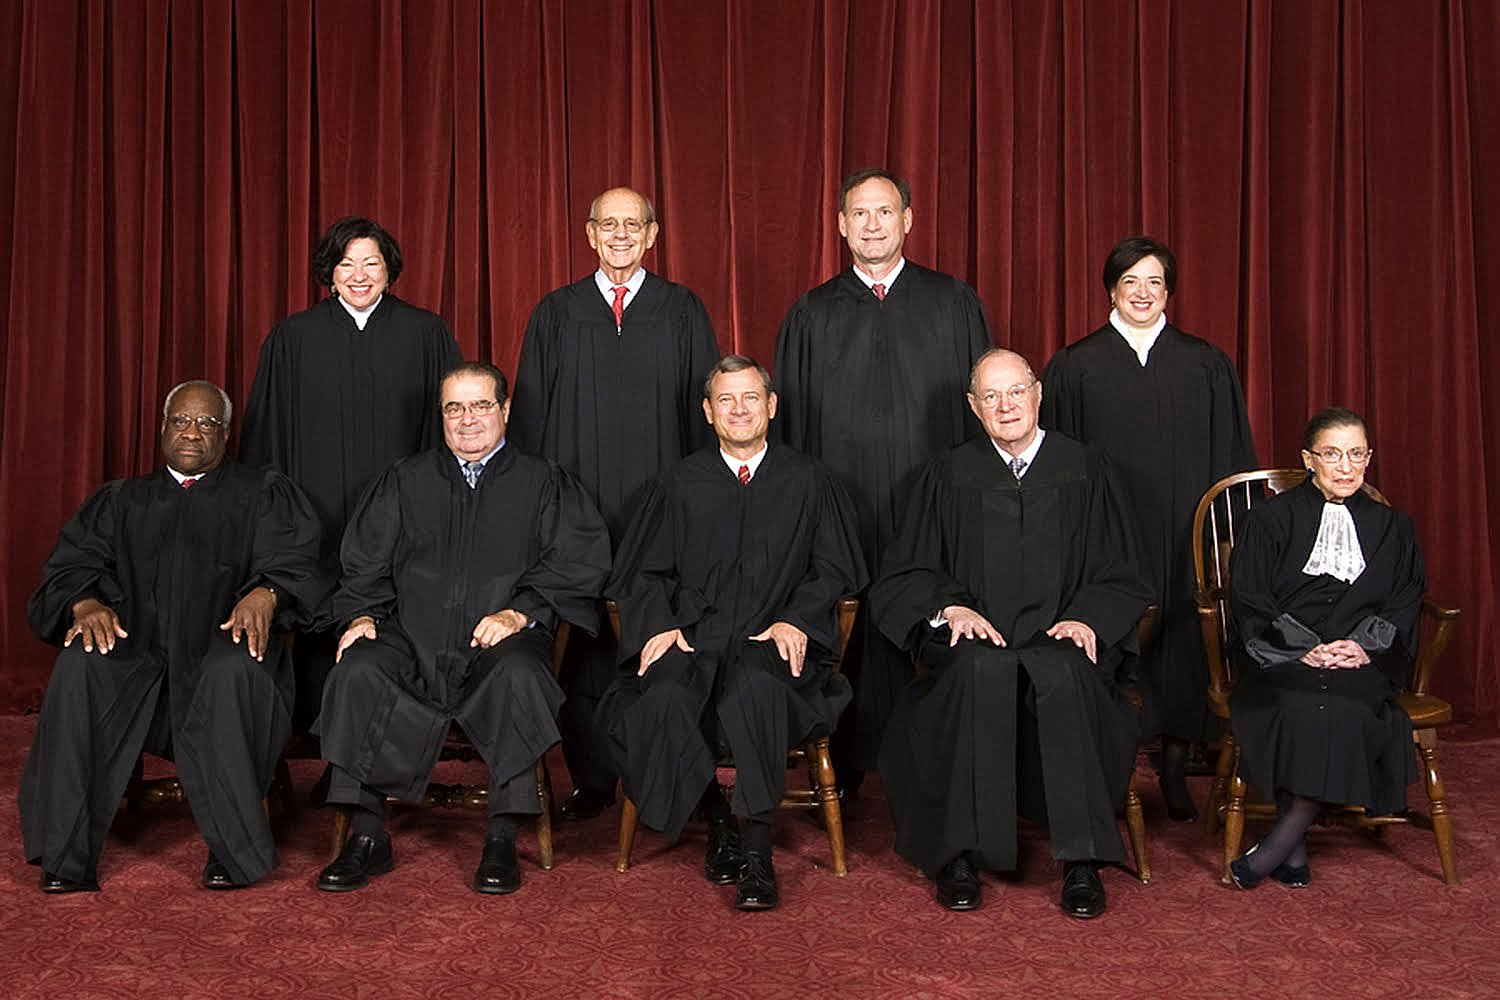 Wednesday, the U.S. Supreme Court hear arguments on whether government-sanctioned prayer before public meetings is constitutional. Photo via Wikipedia Commons